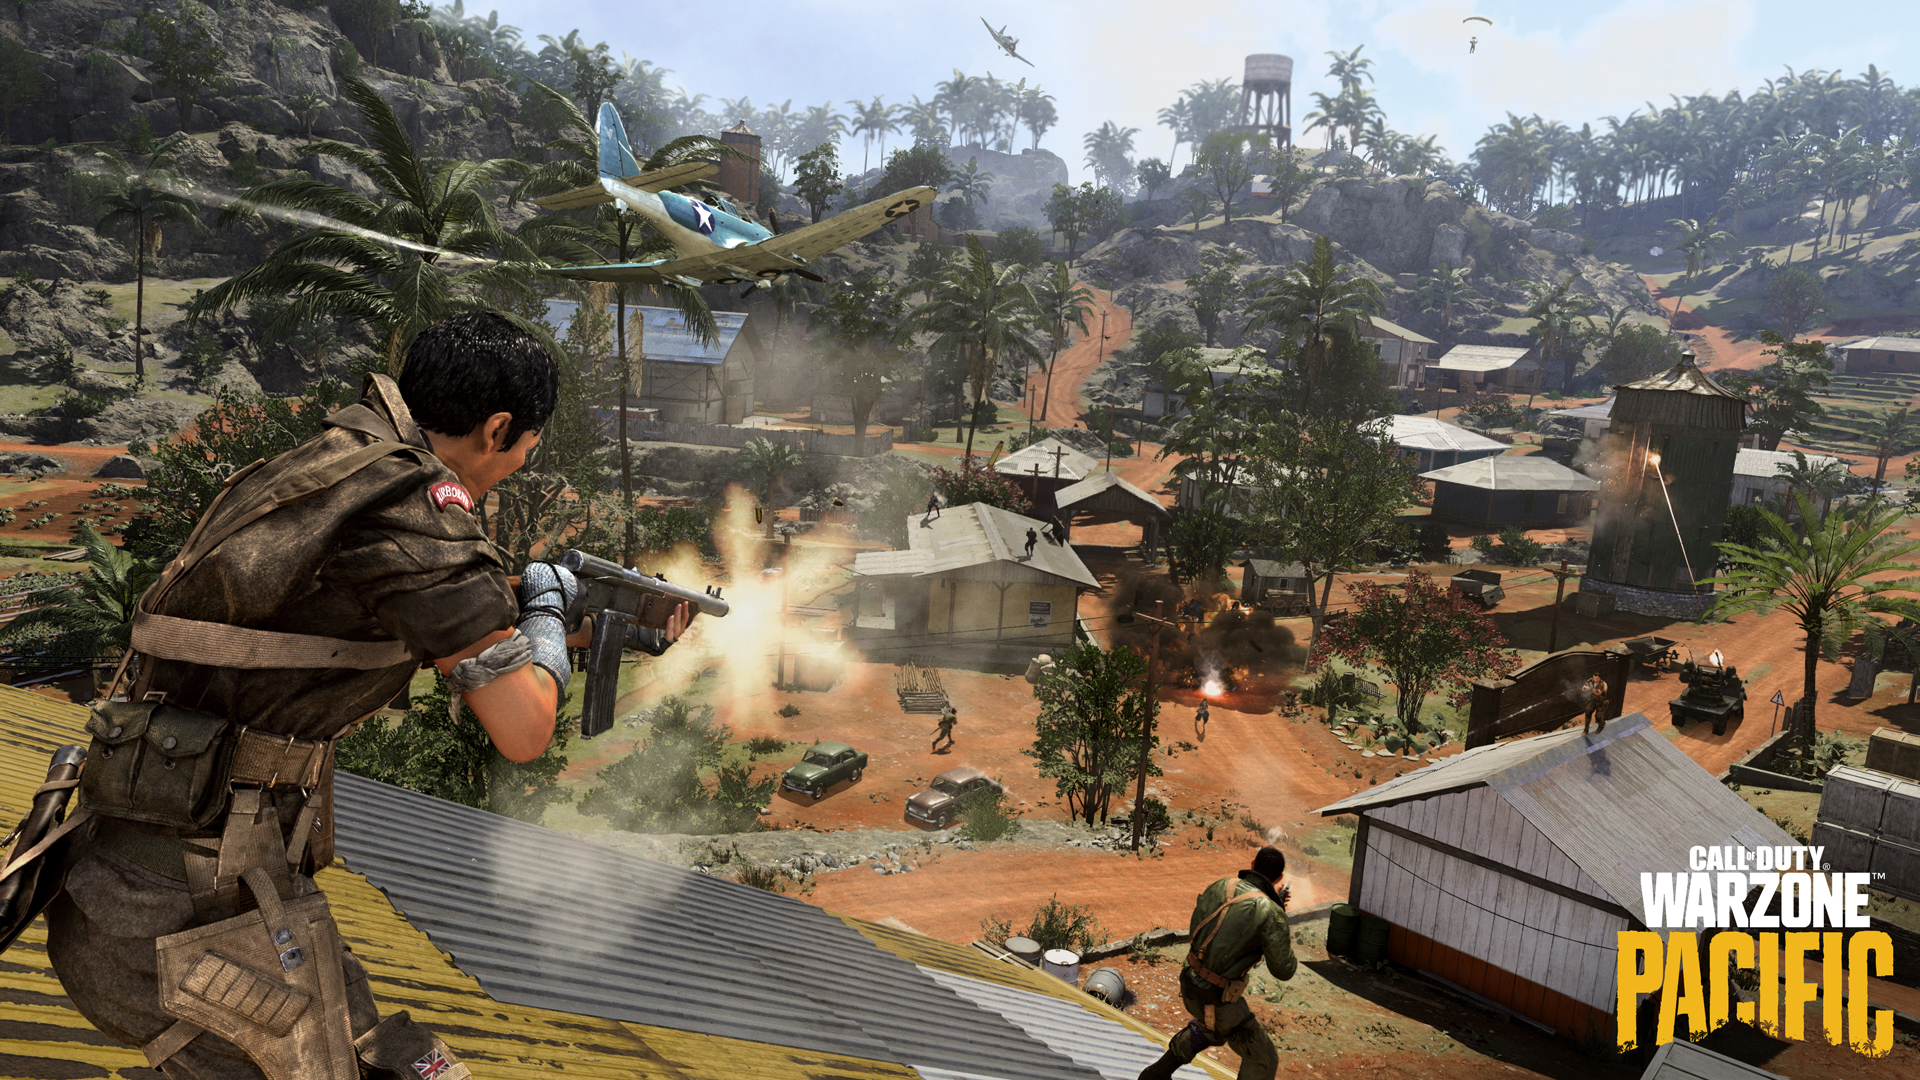 Call of Duty: Warzone players fighting on Caldera